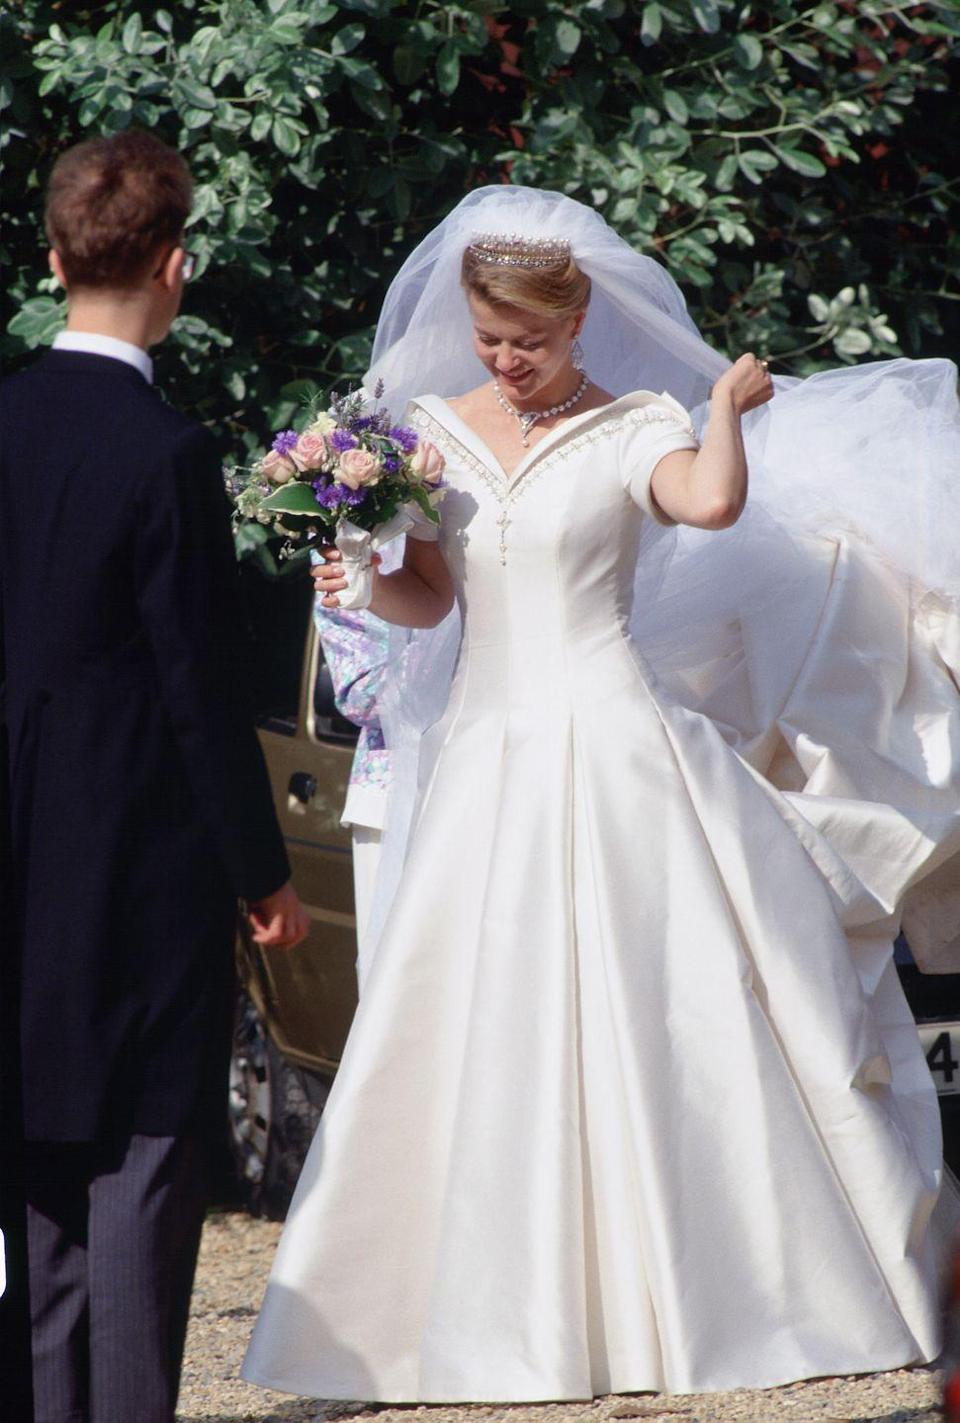 <p>Lady Helen Windsor stunned in a bespoke Catherine Walker bridal gown for her wedding to Timothy Taylor. The bride's Tudor-style gown featured structured off-the-shoulder sleeves and gold embroidery details. </p>